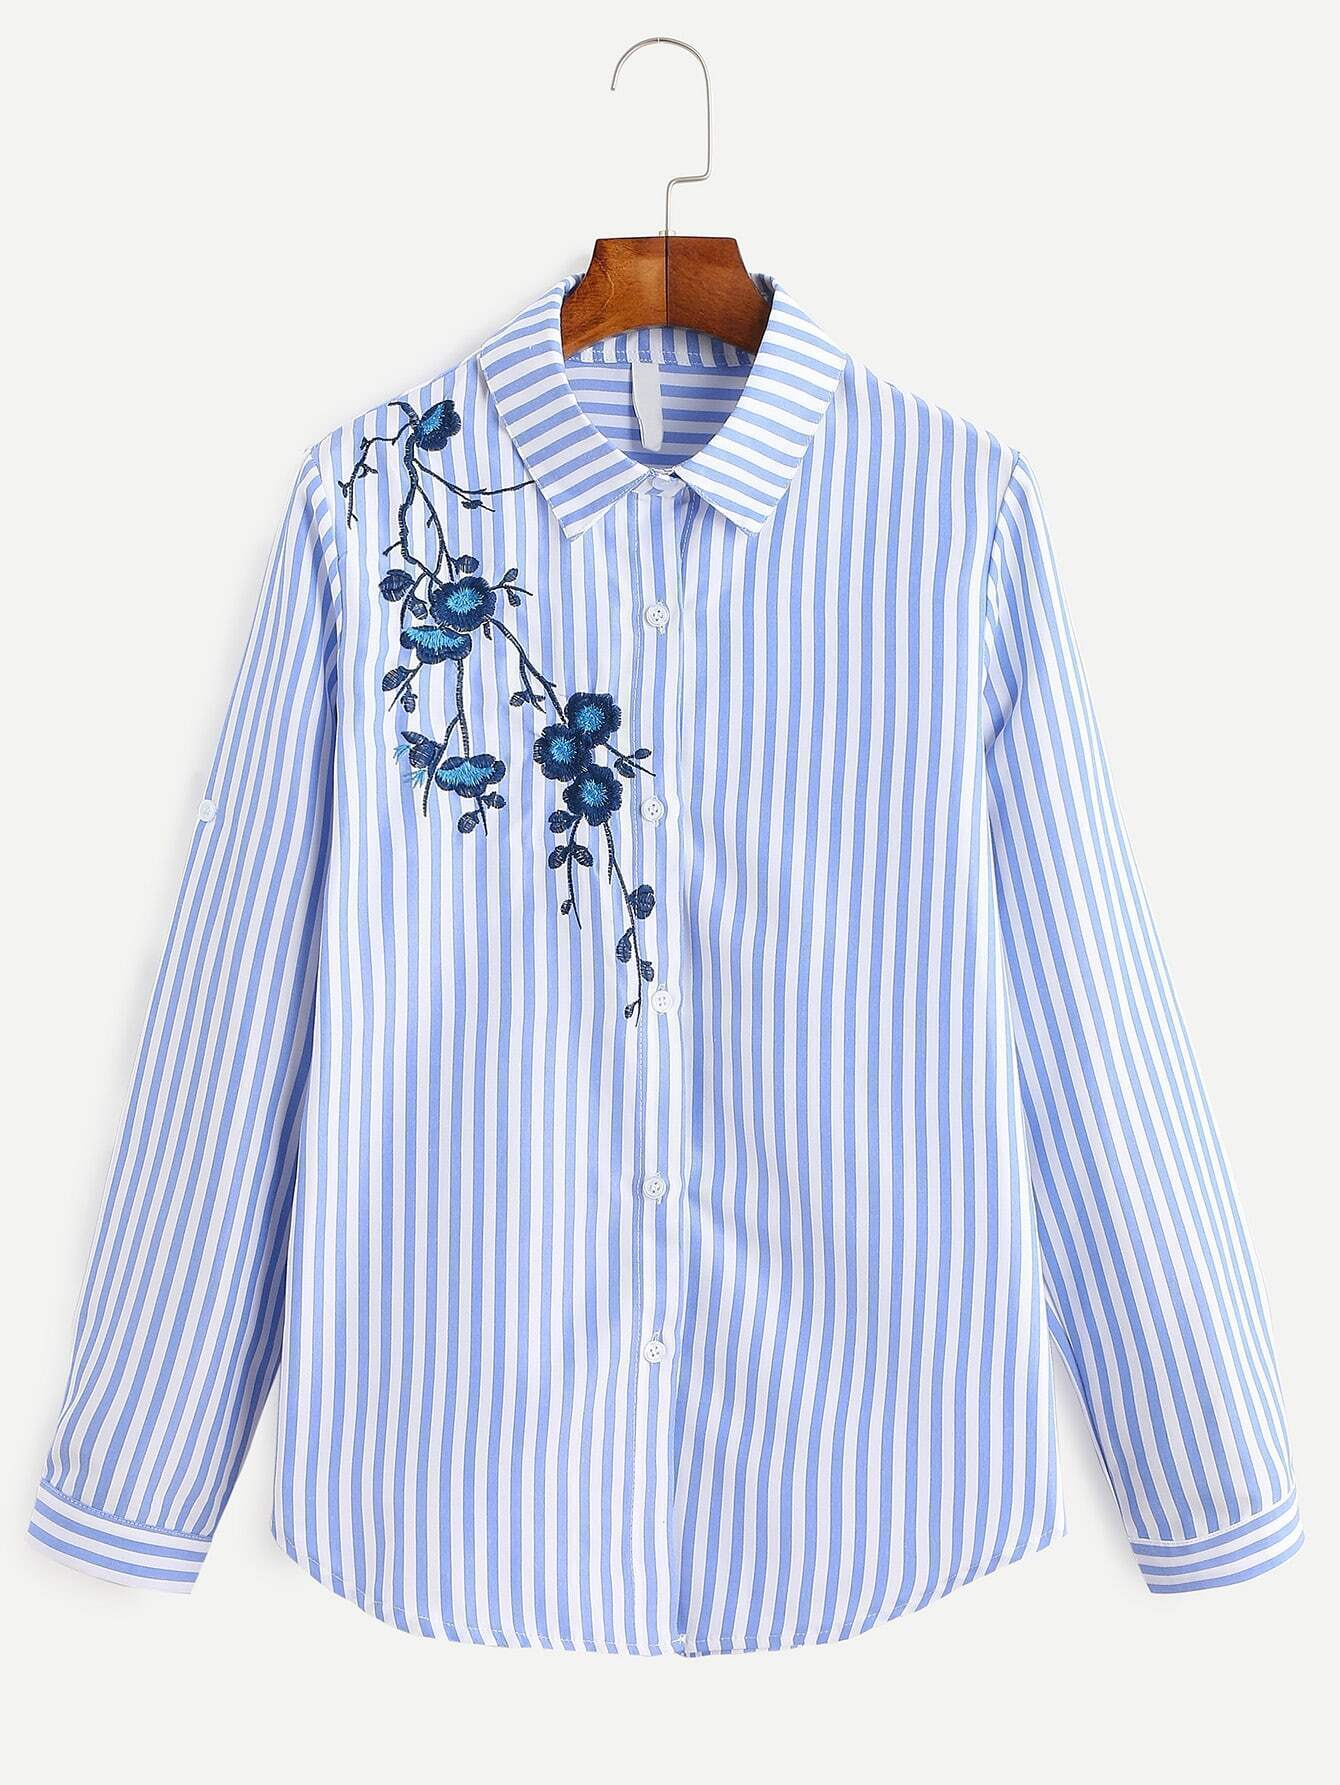 da57db1dc8 Blue Vertical Striped Embroidered Roll Tab Sleeve Shirt EmmaCloth ...